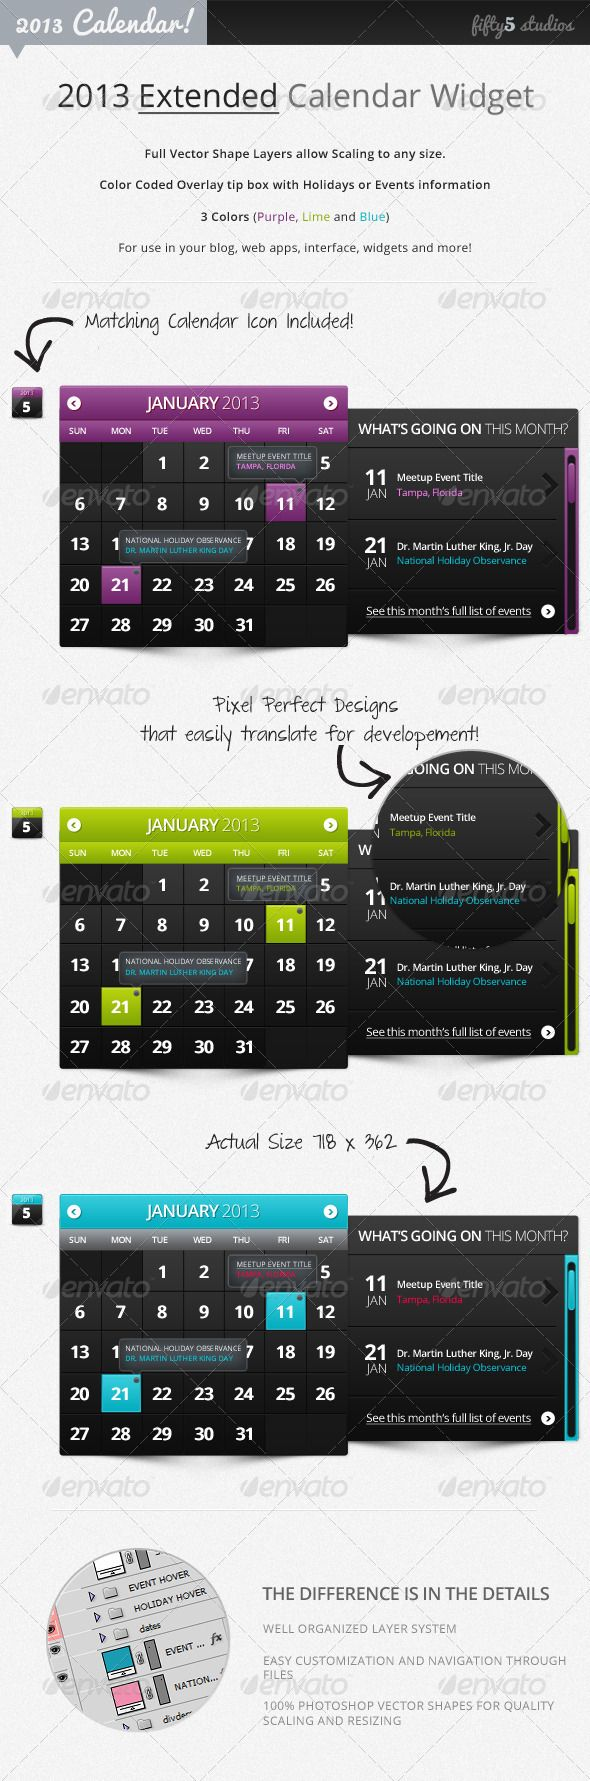 2013 (Extended) Calendar Widget v2.0 - GraphicRiver Item for Sale